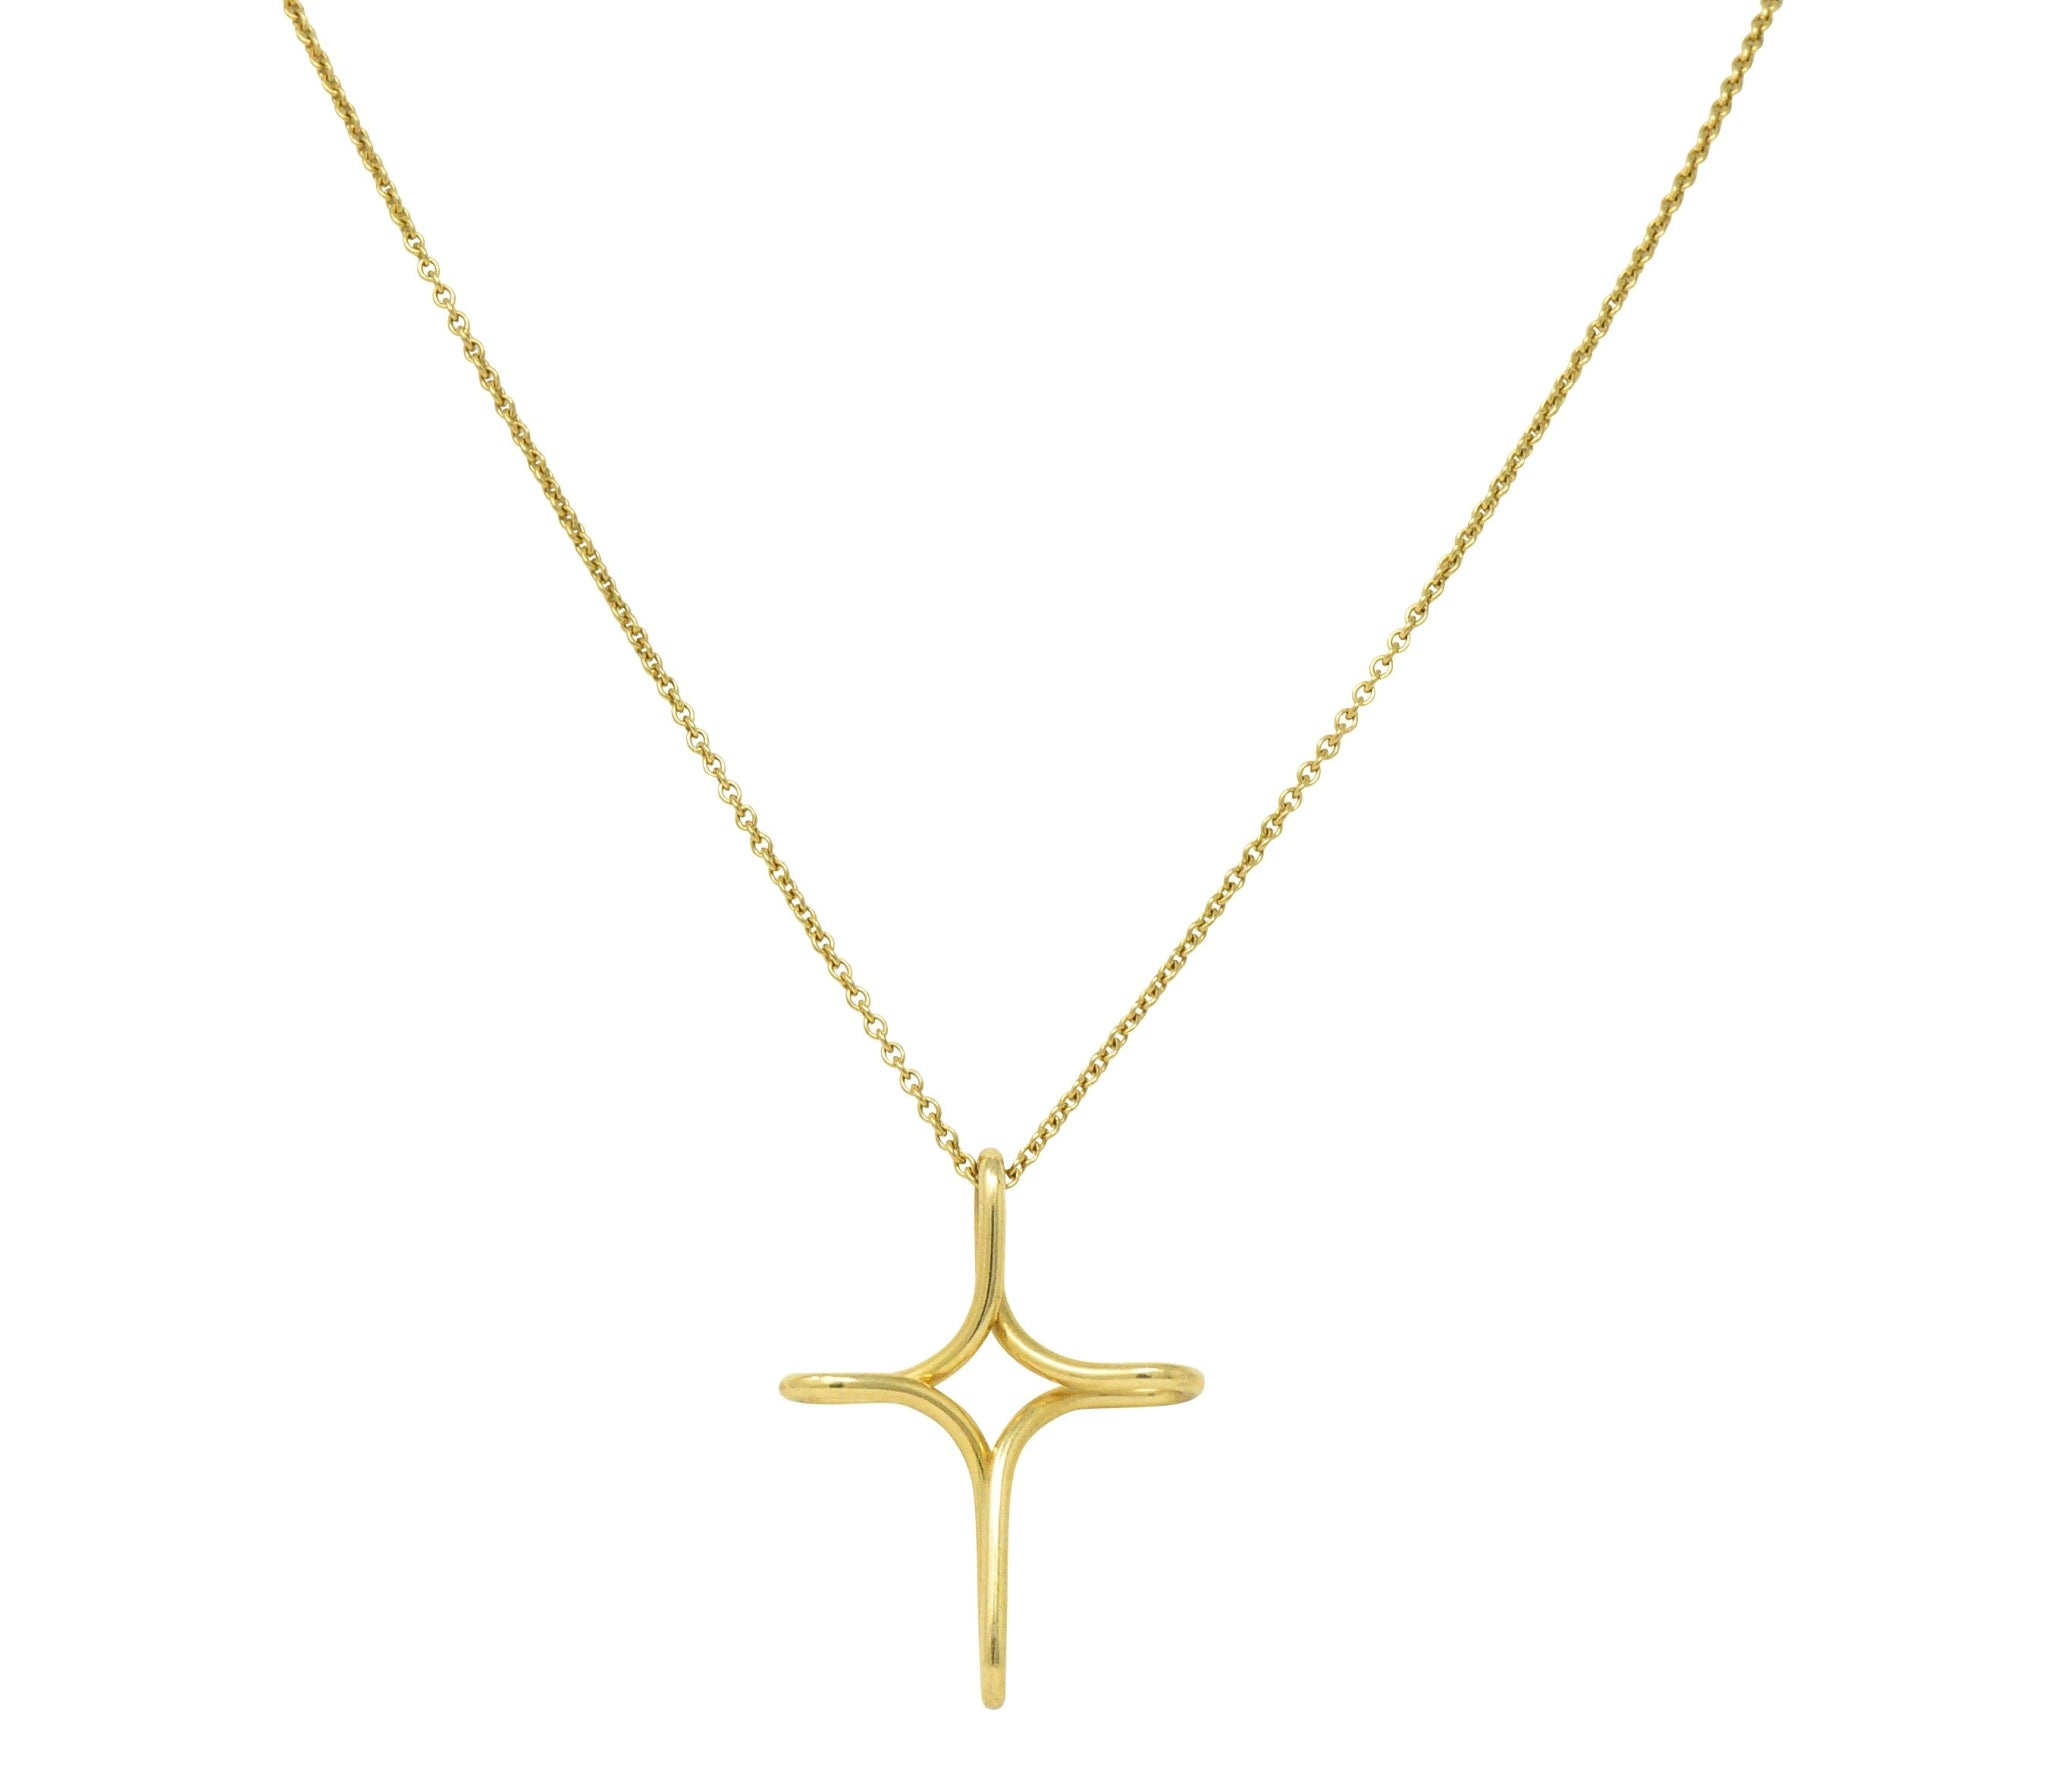 545ebf70a Elsa Peretti Tiffany & Co. 18 Karat Gold Infinity Cross Pendant Necklace  Necklace ...